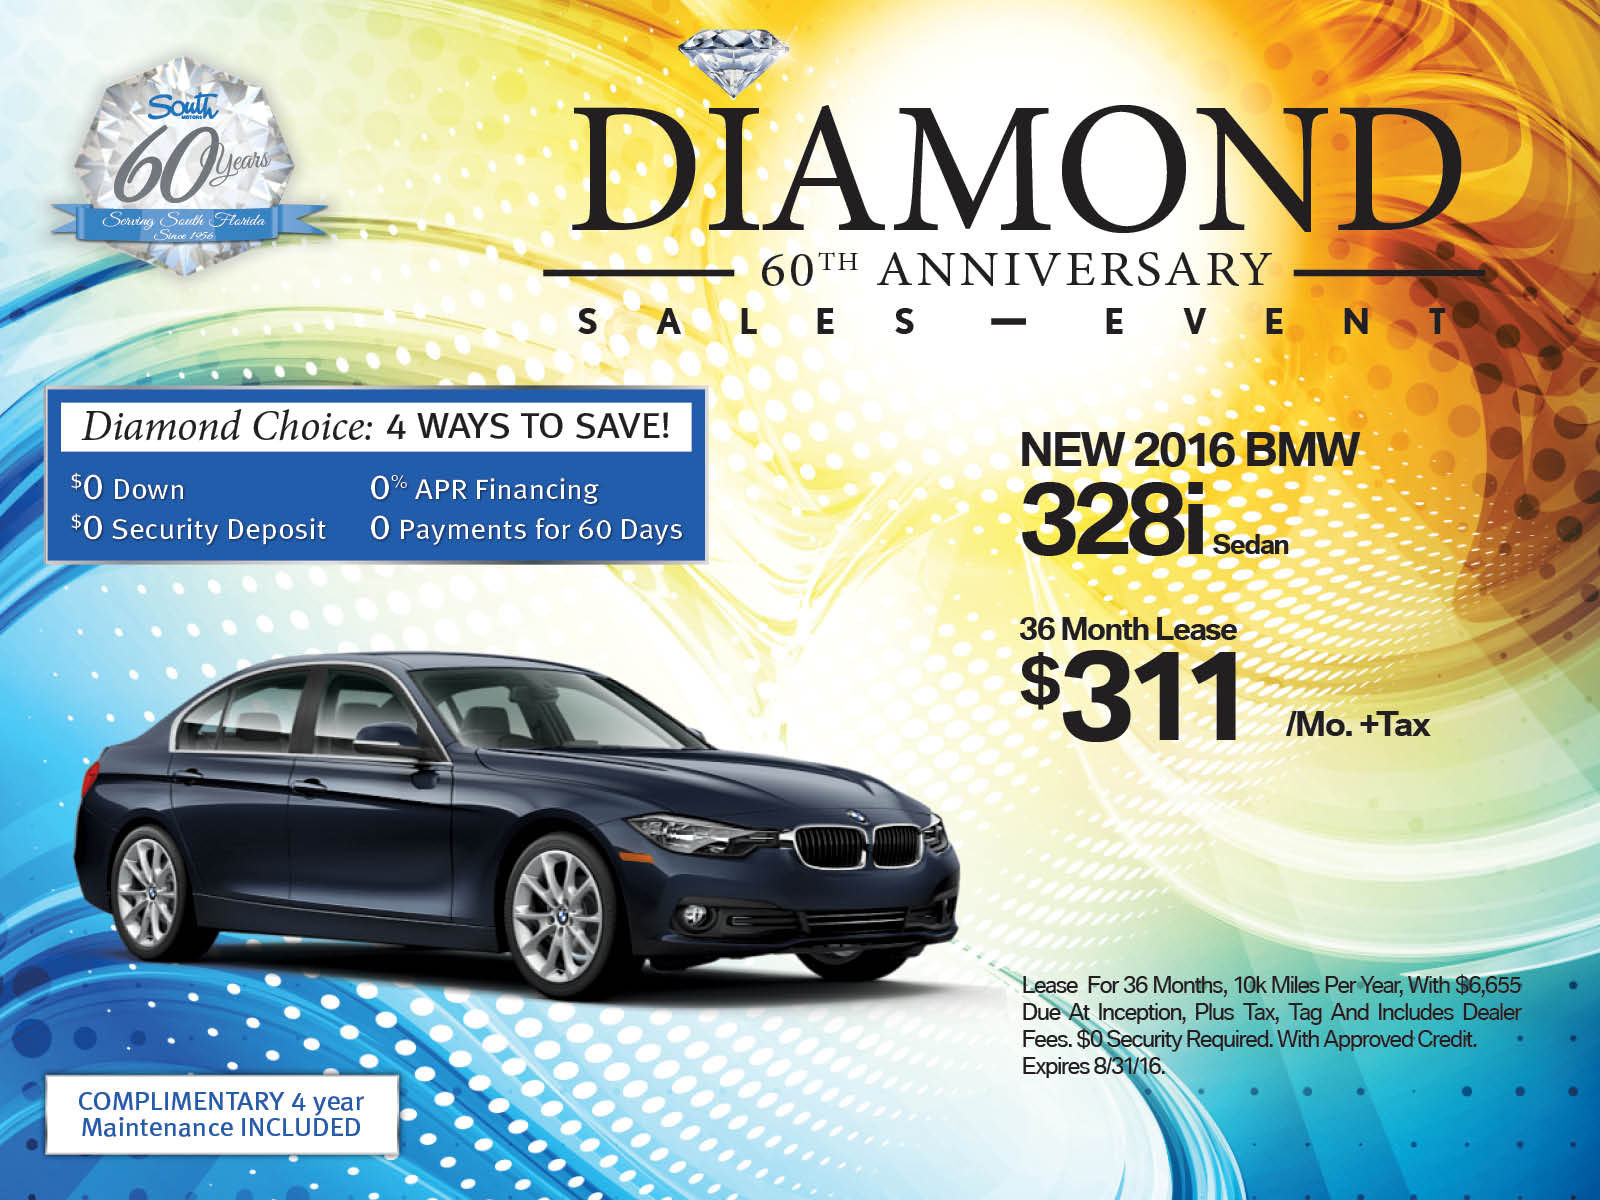 BMW 3 Series lease offer